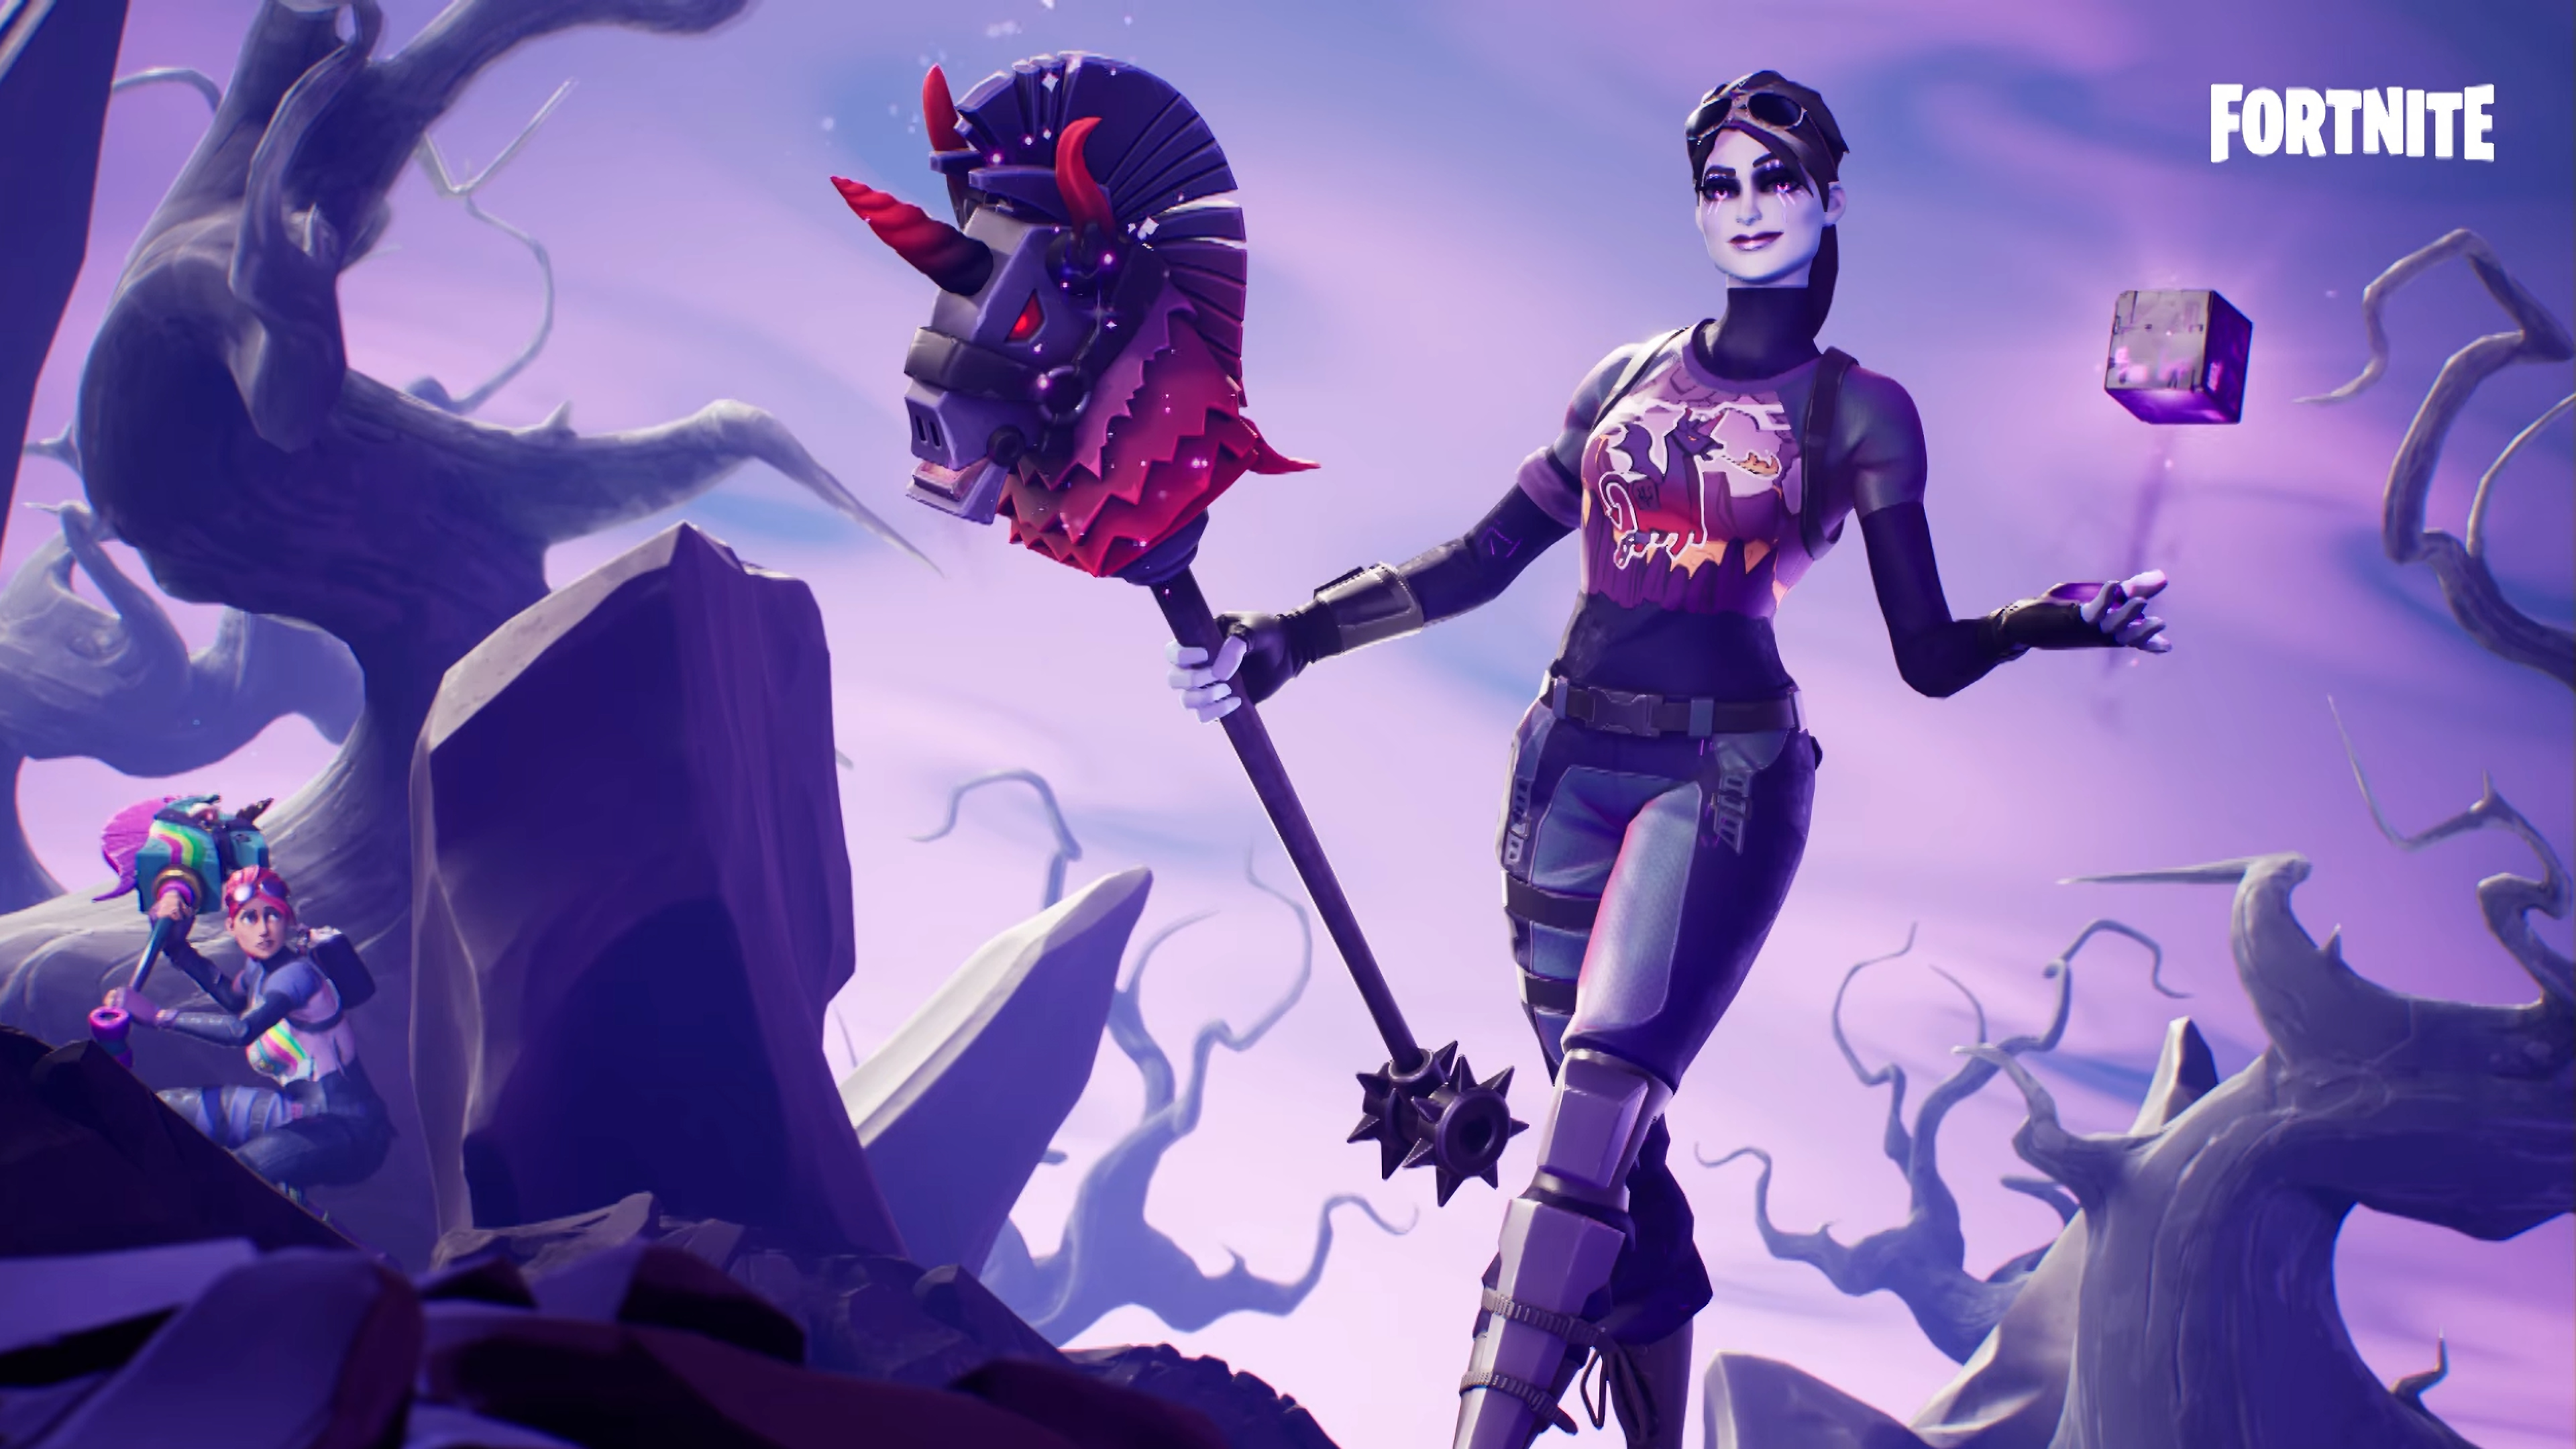 Dark Bomber Fortnite Wallpapers Wallpapersafari